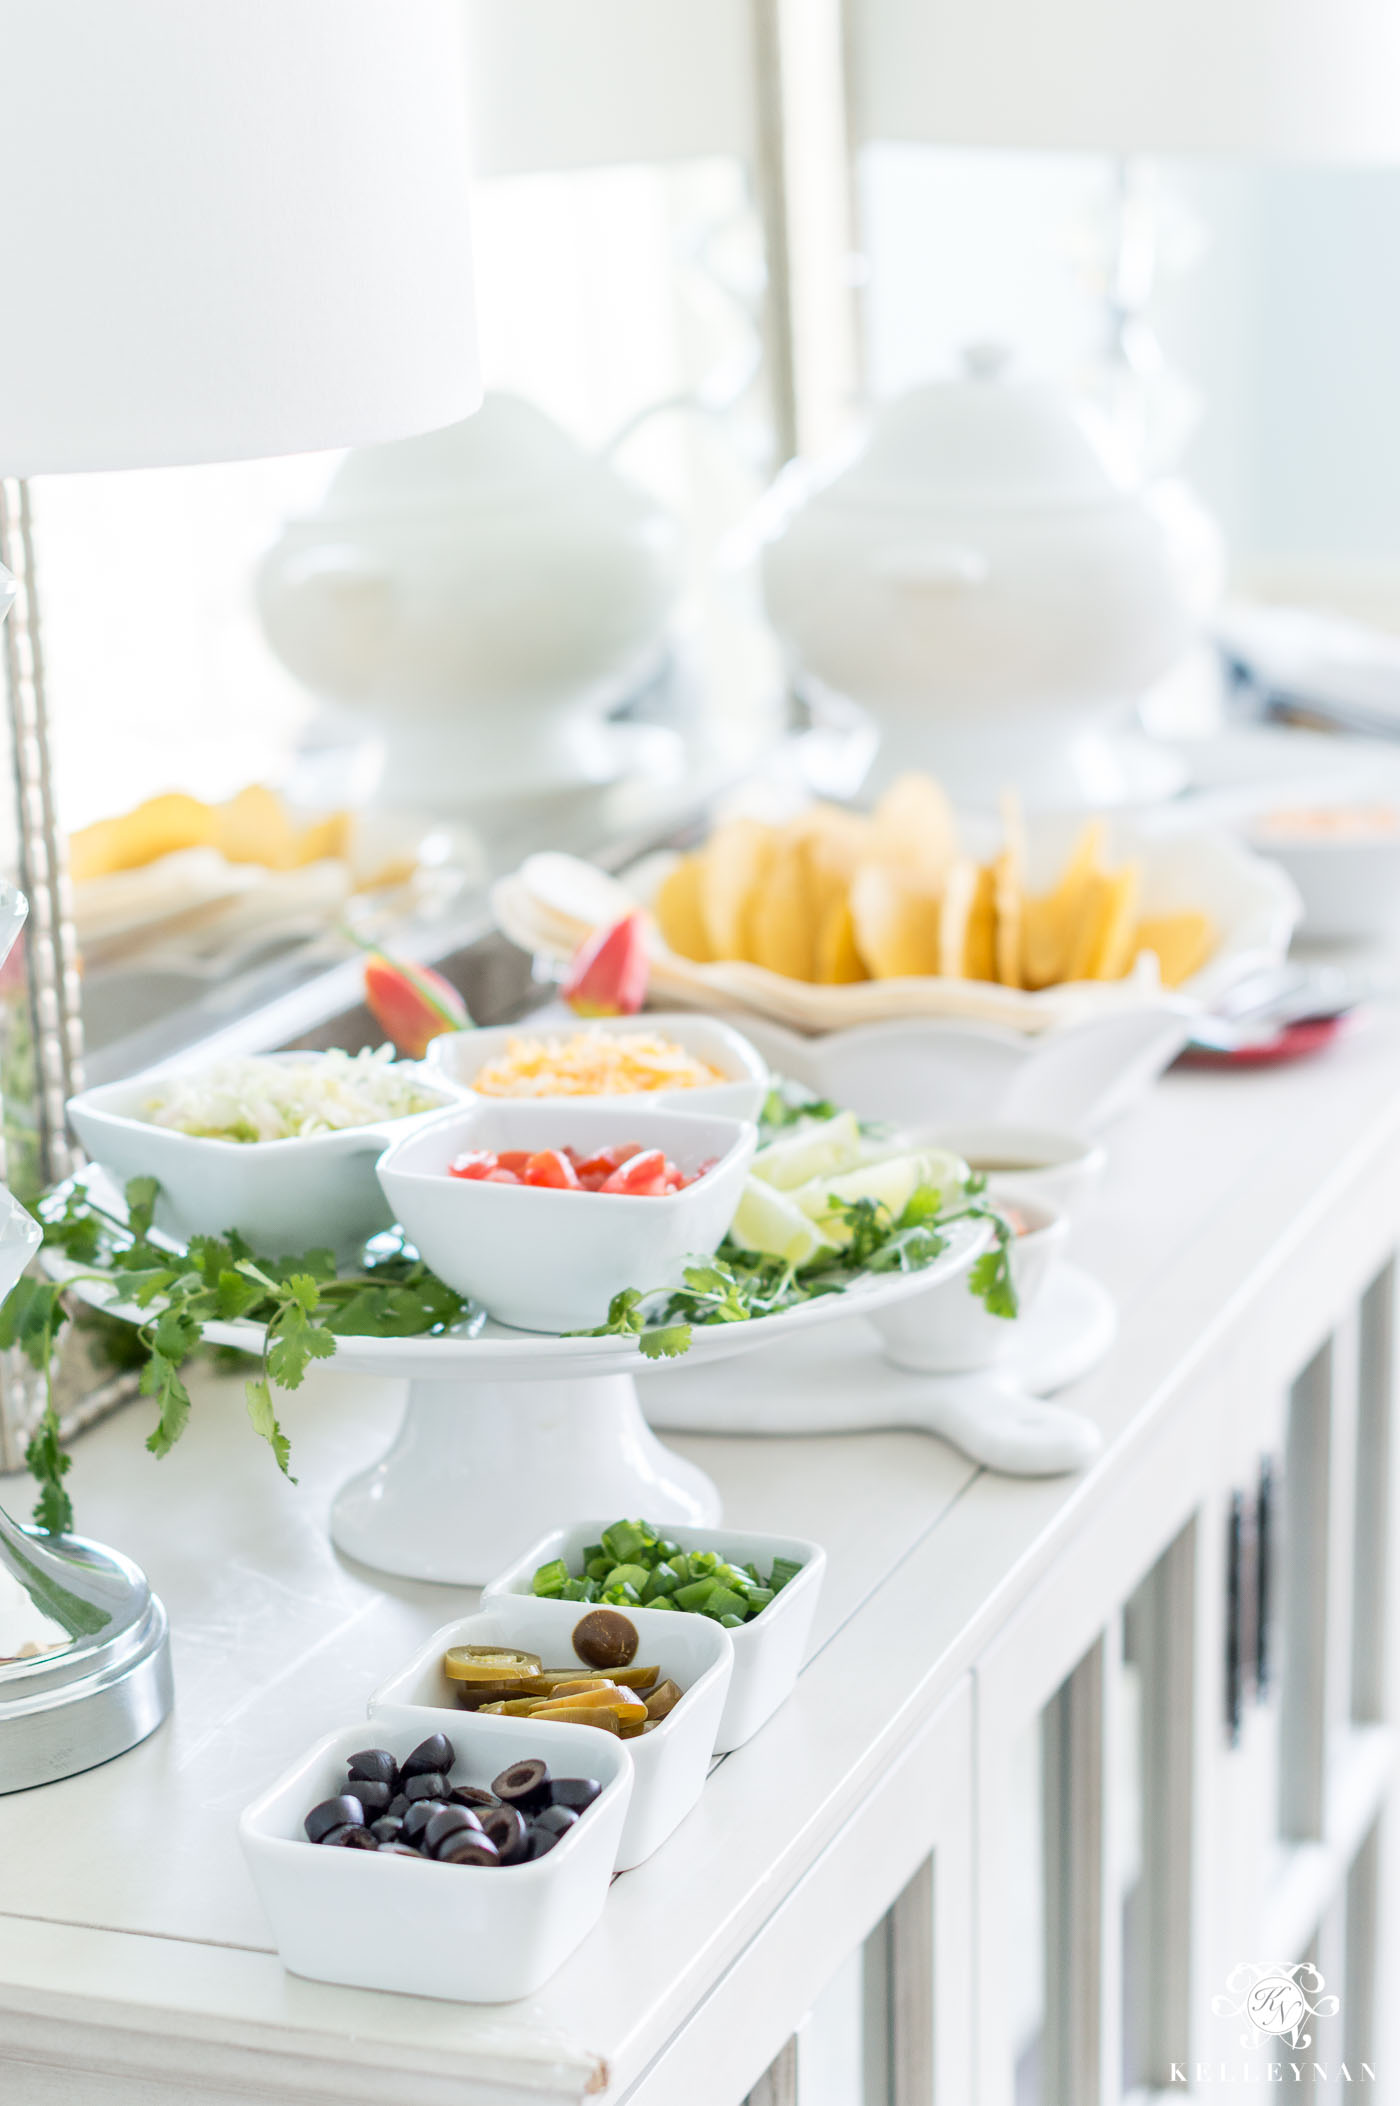 DIY Taco Bar with Toppings and Sides